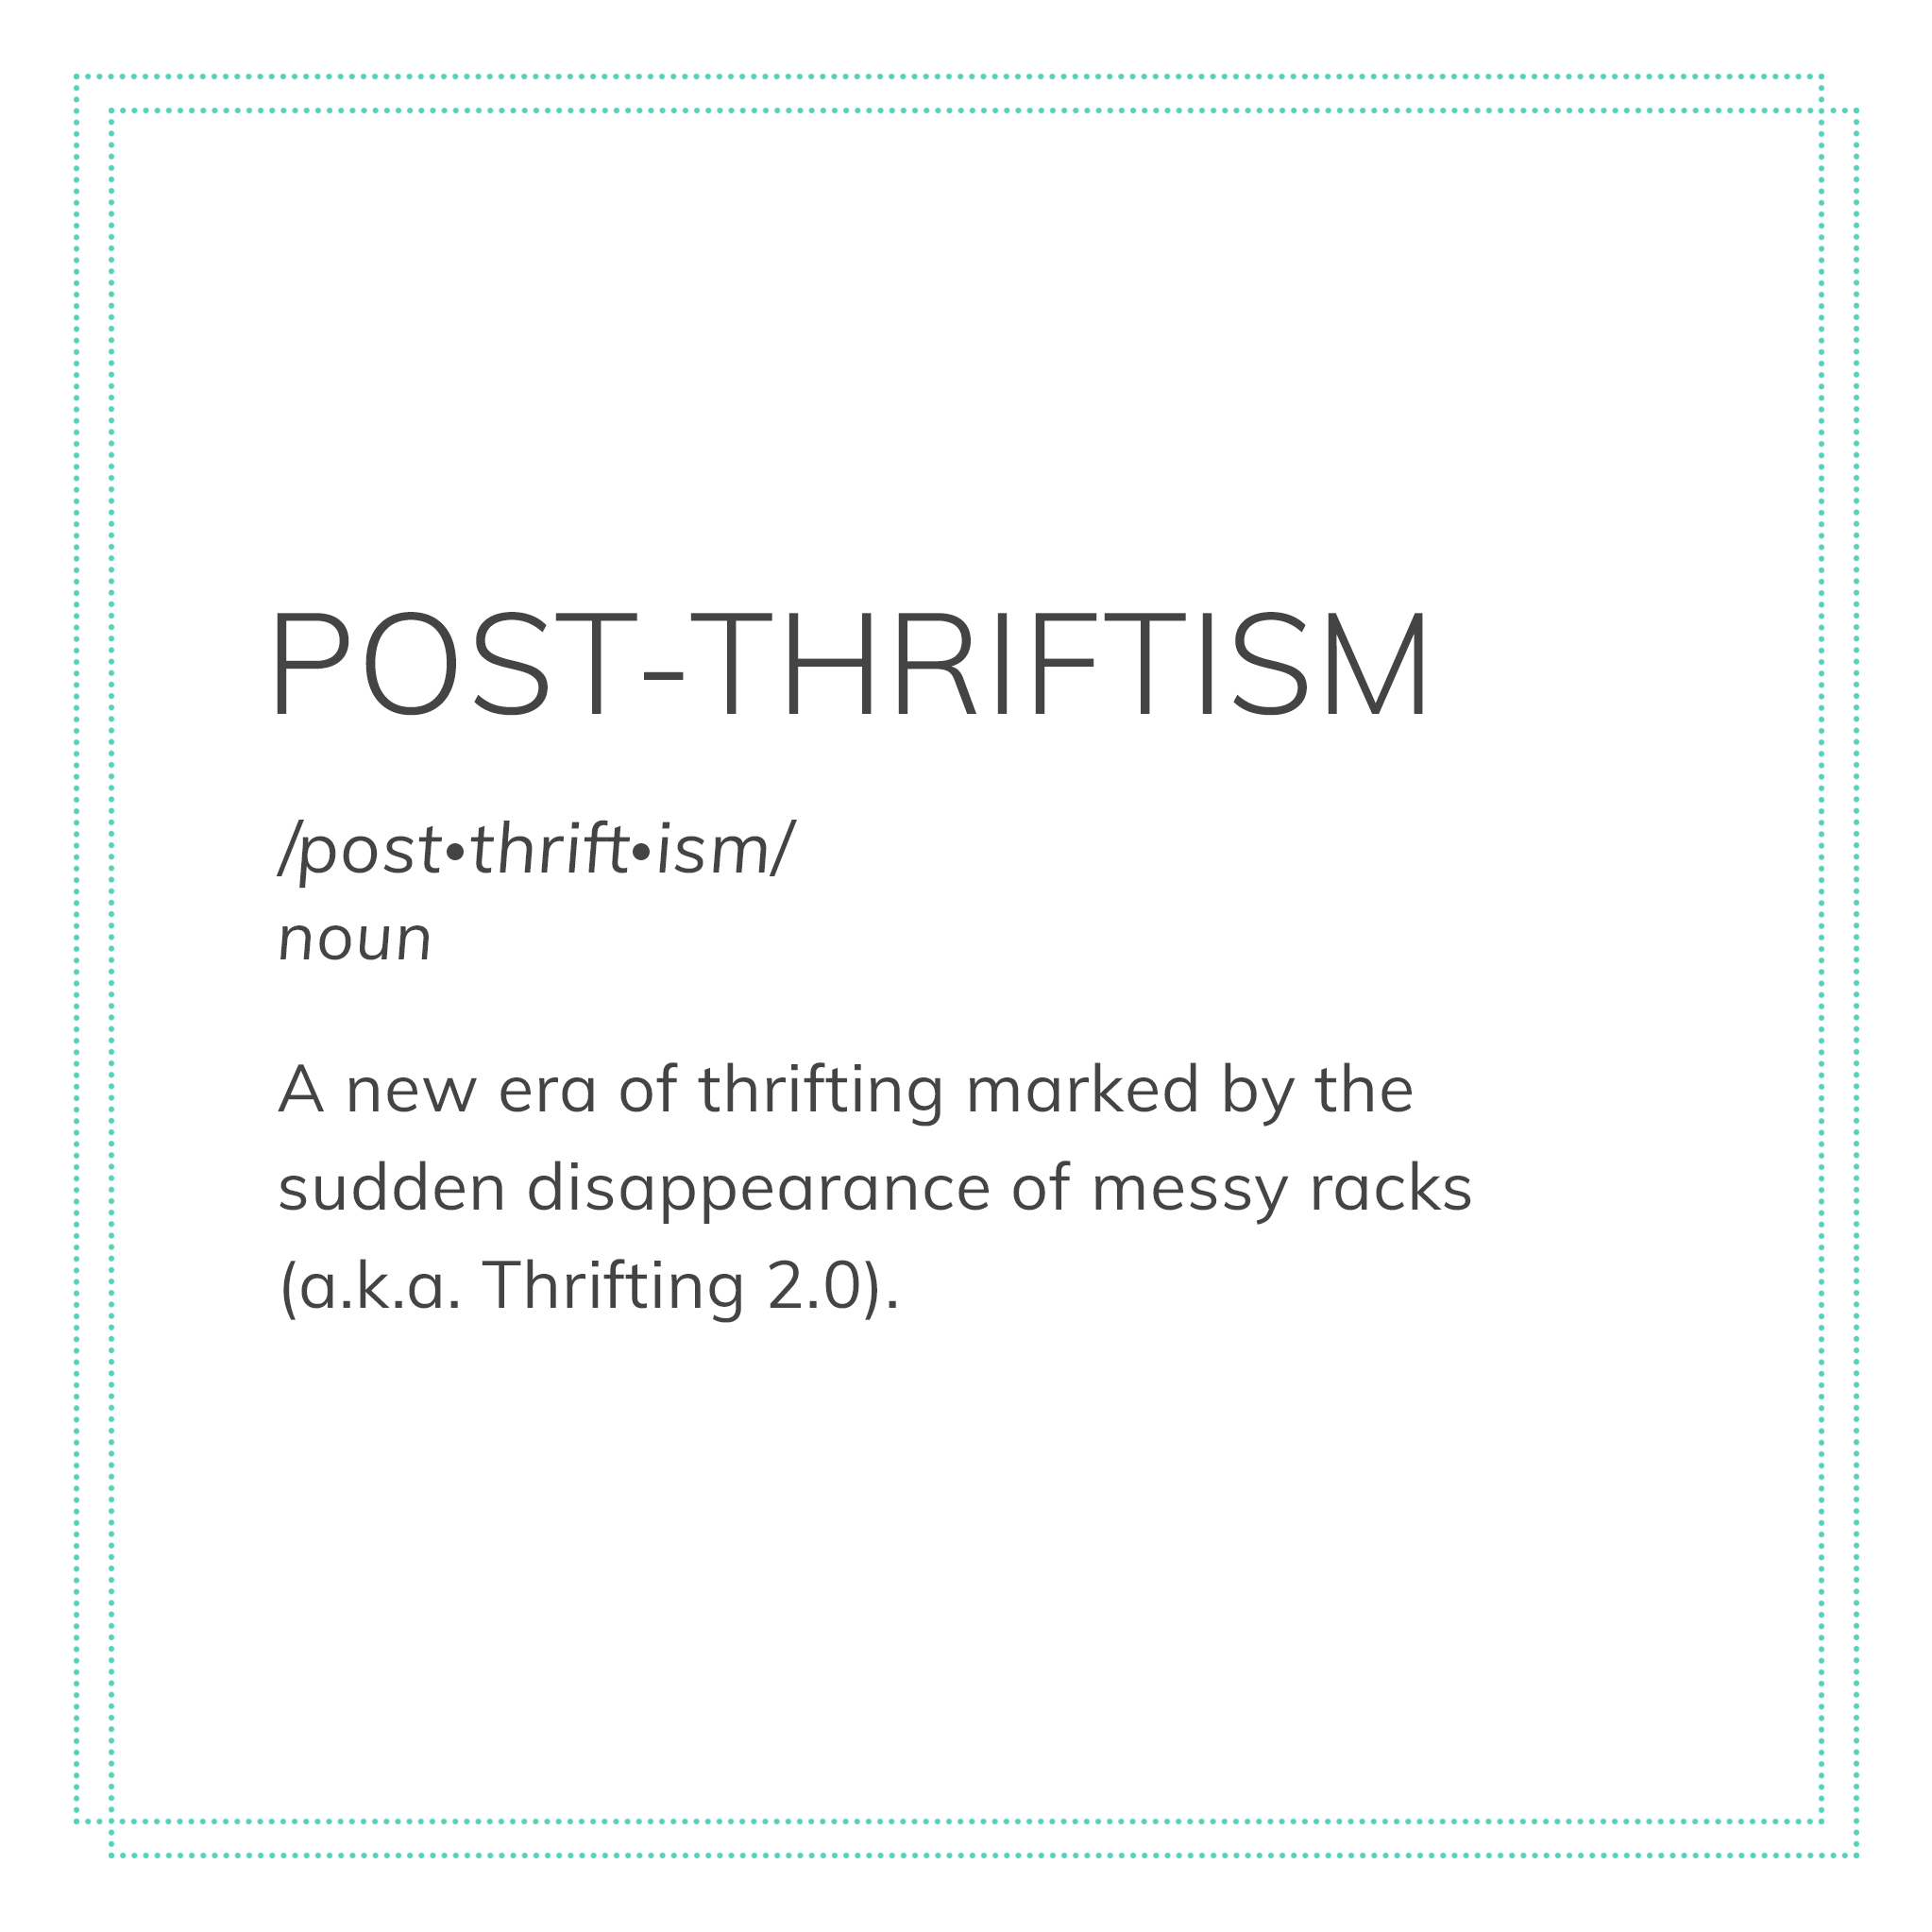 thredUPedia-definition-postThriftism